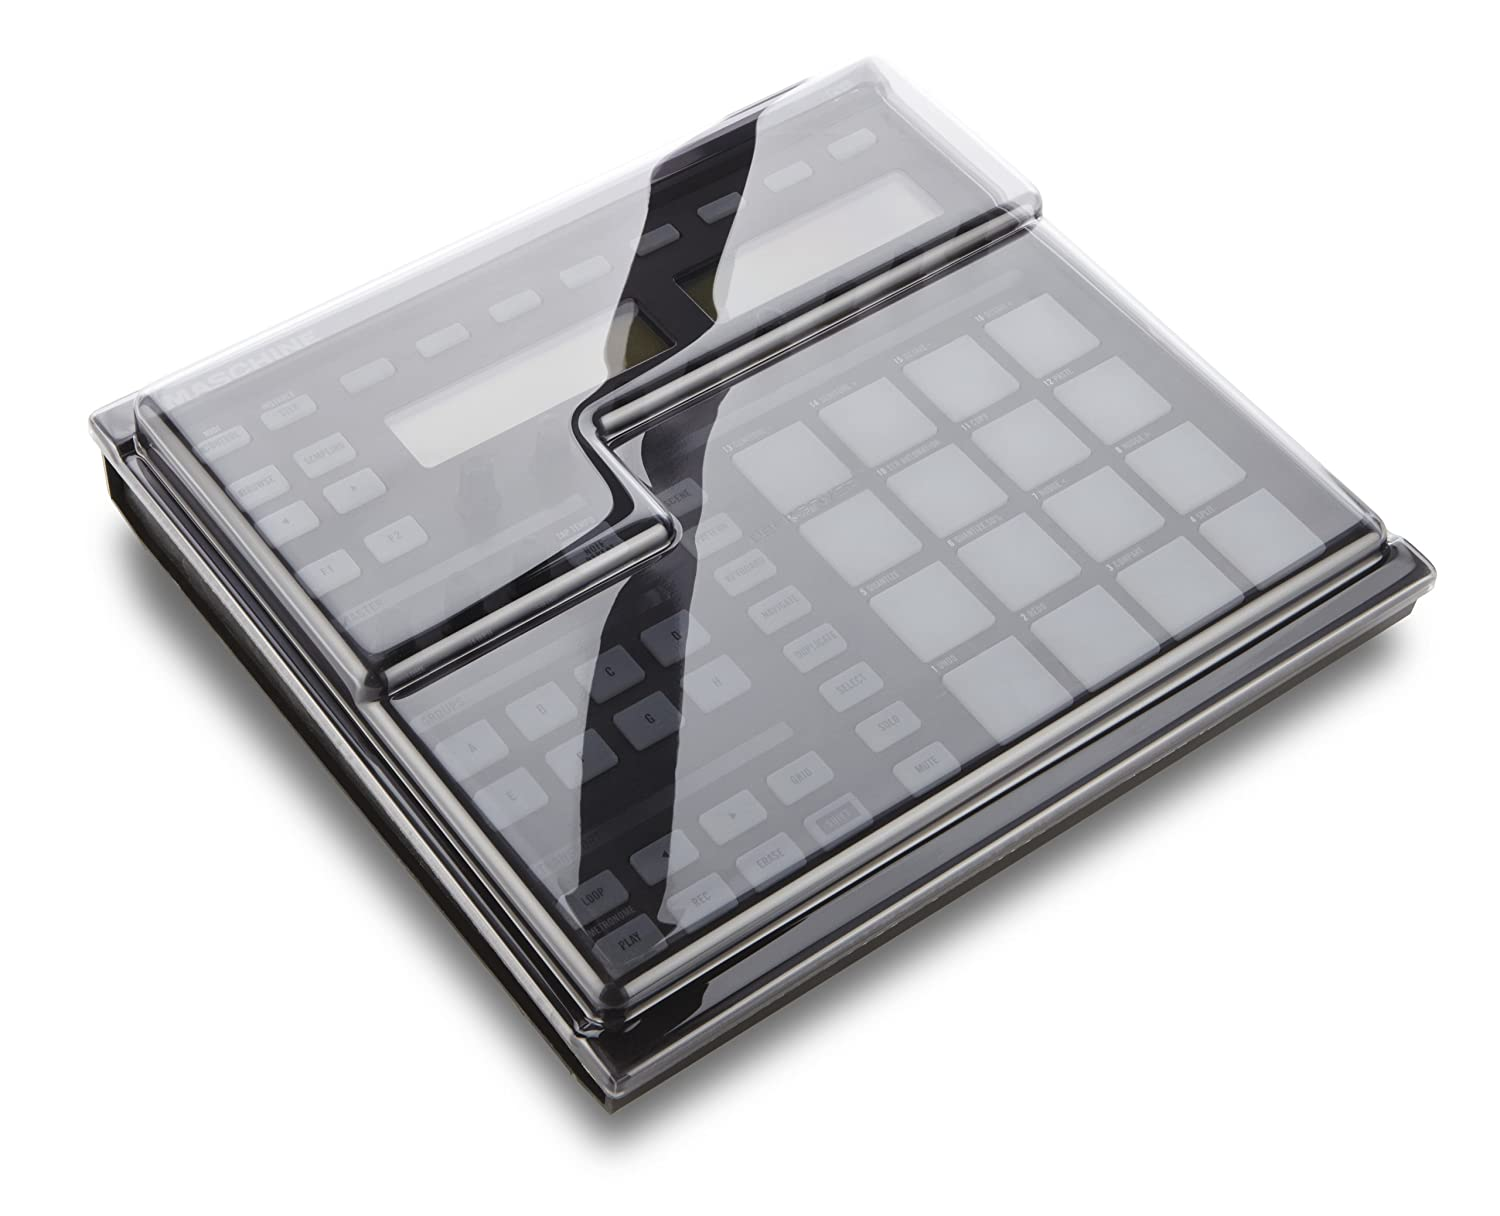 Decksaver NI Maschine Polycarbonate Cover DJ Mixer Case (DS-PC-MASCHINE)